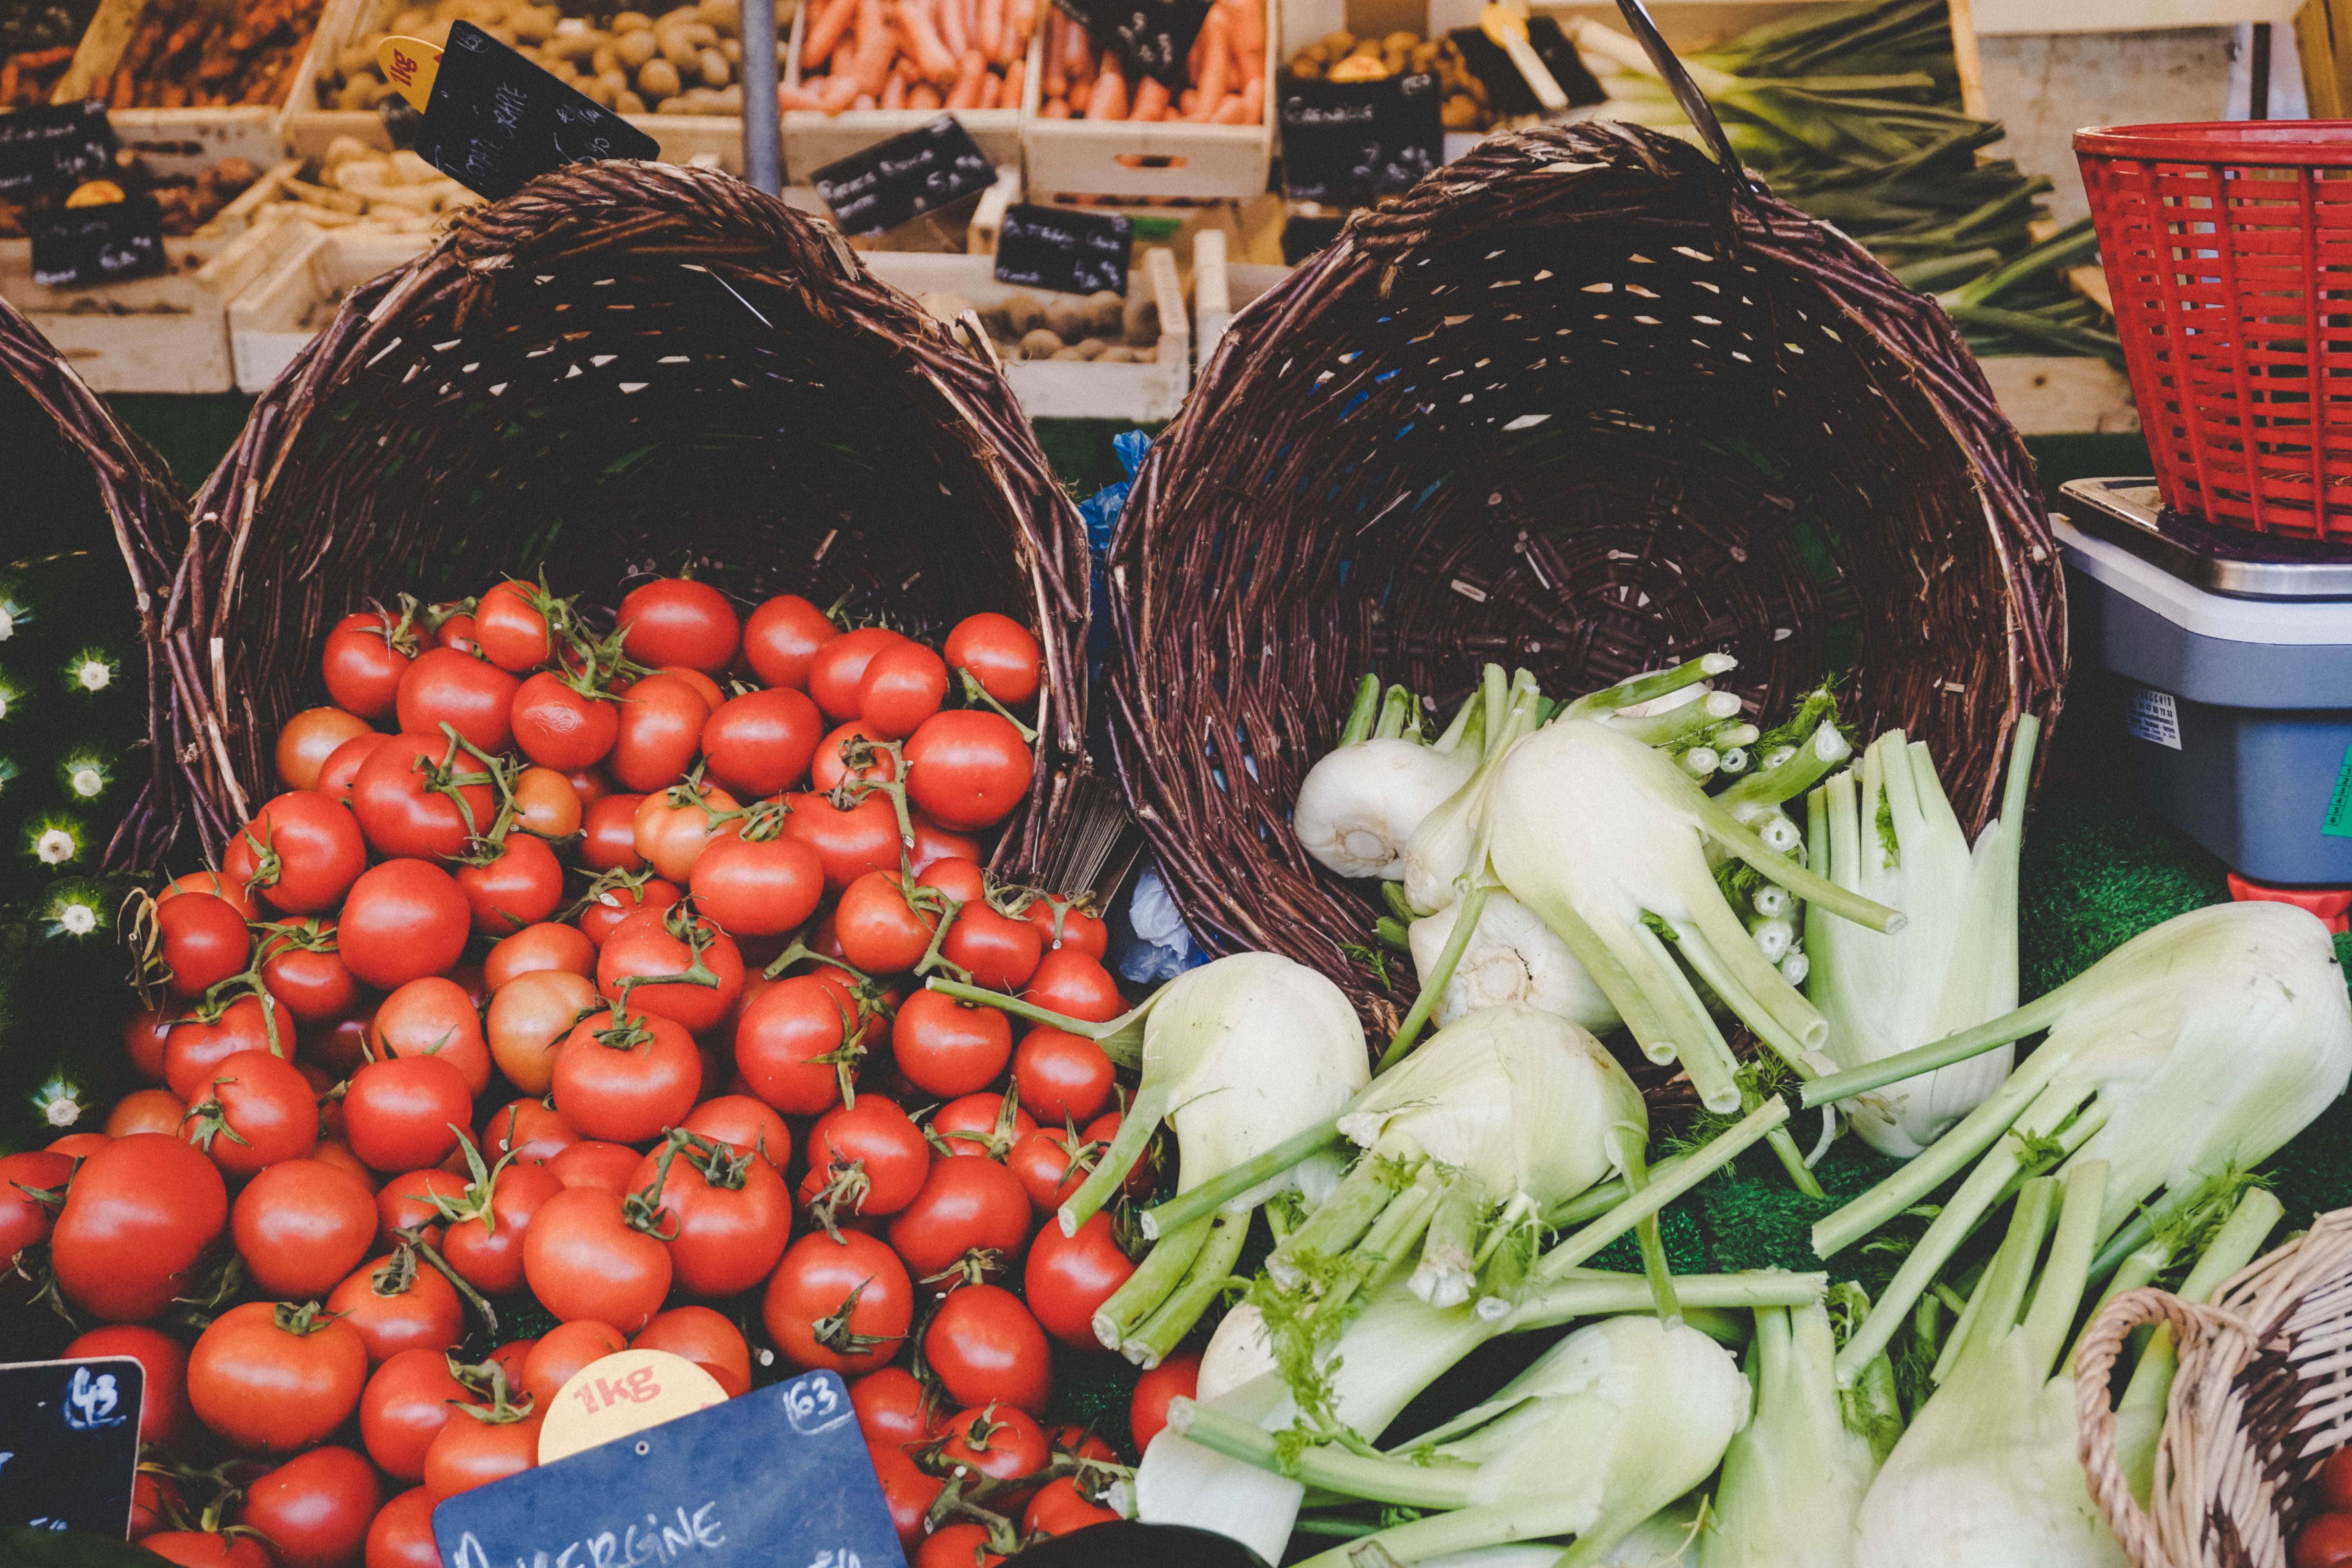 Two baskets with tomatoes and fennels overflowing with other vegetables in the background